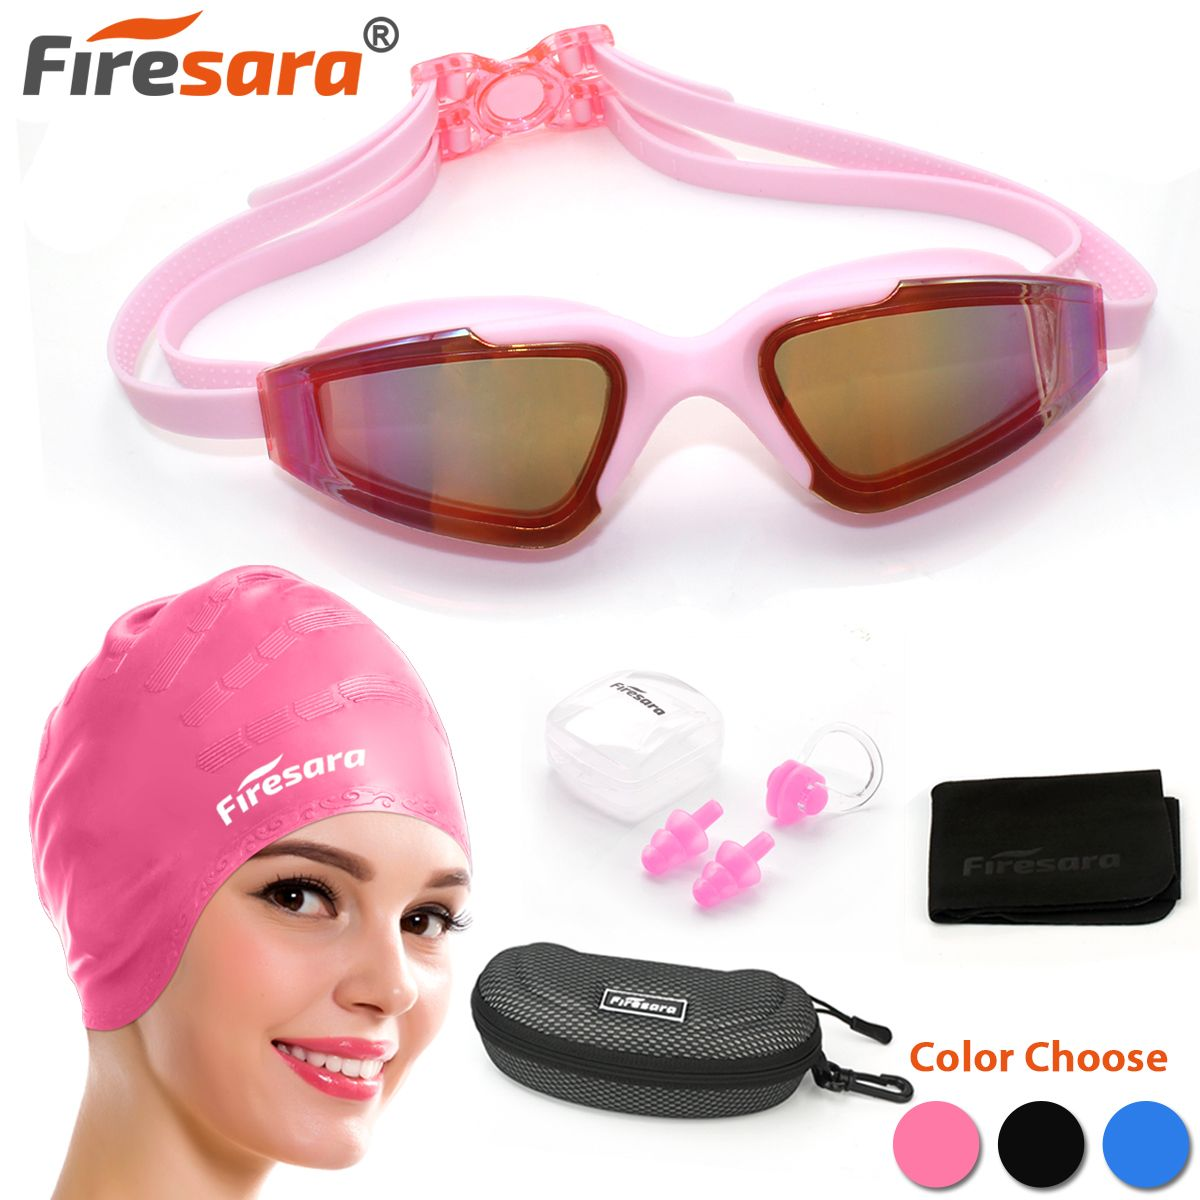 21692dc9b188 Firesara Swim Cap Swimming Goggles Anti Fog UV Protection for Adults Youth  Men Women Boys Kids with Nose Clip Ear Plugs Sets